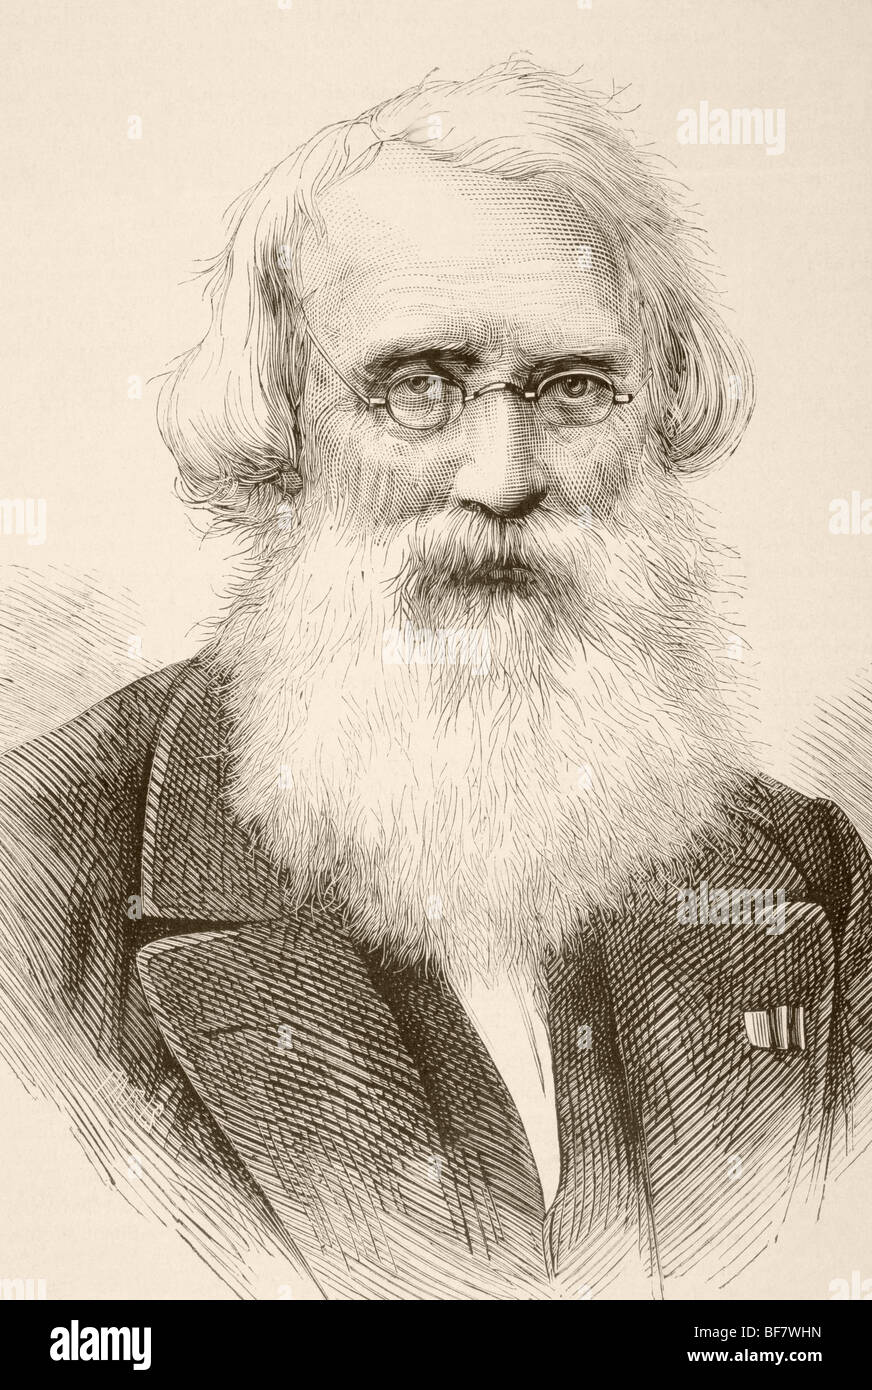 Samuel Finley Breese Morse, 1791 to 1872. American inventor of single-wire telegraph system and Morse code. - Stock Image